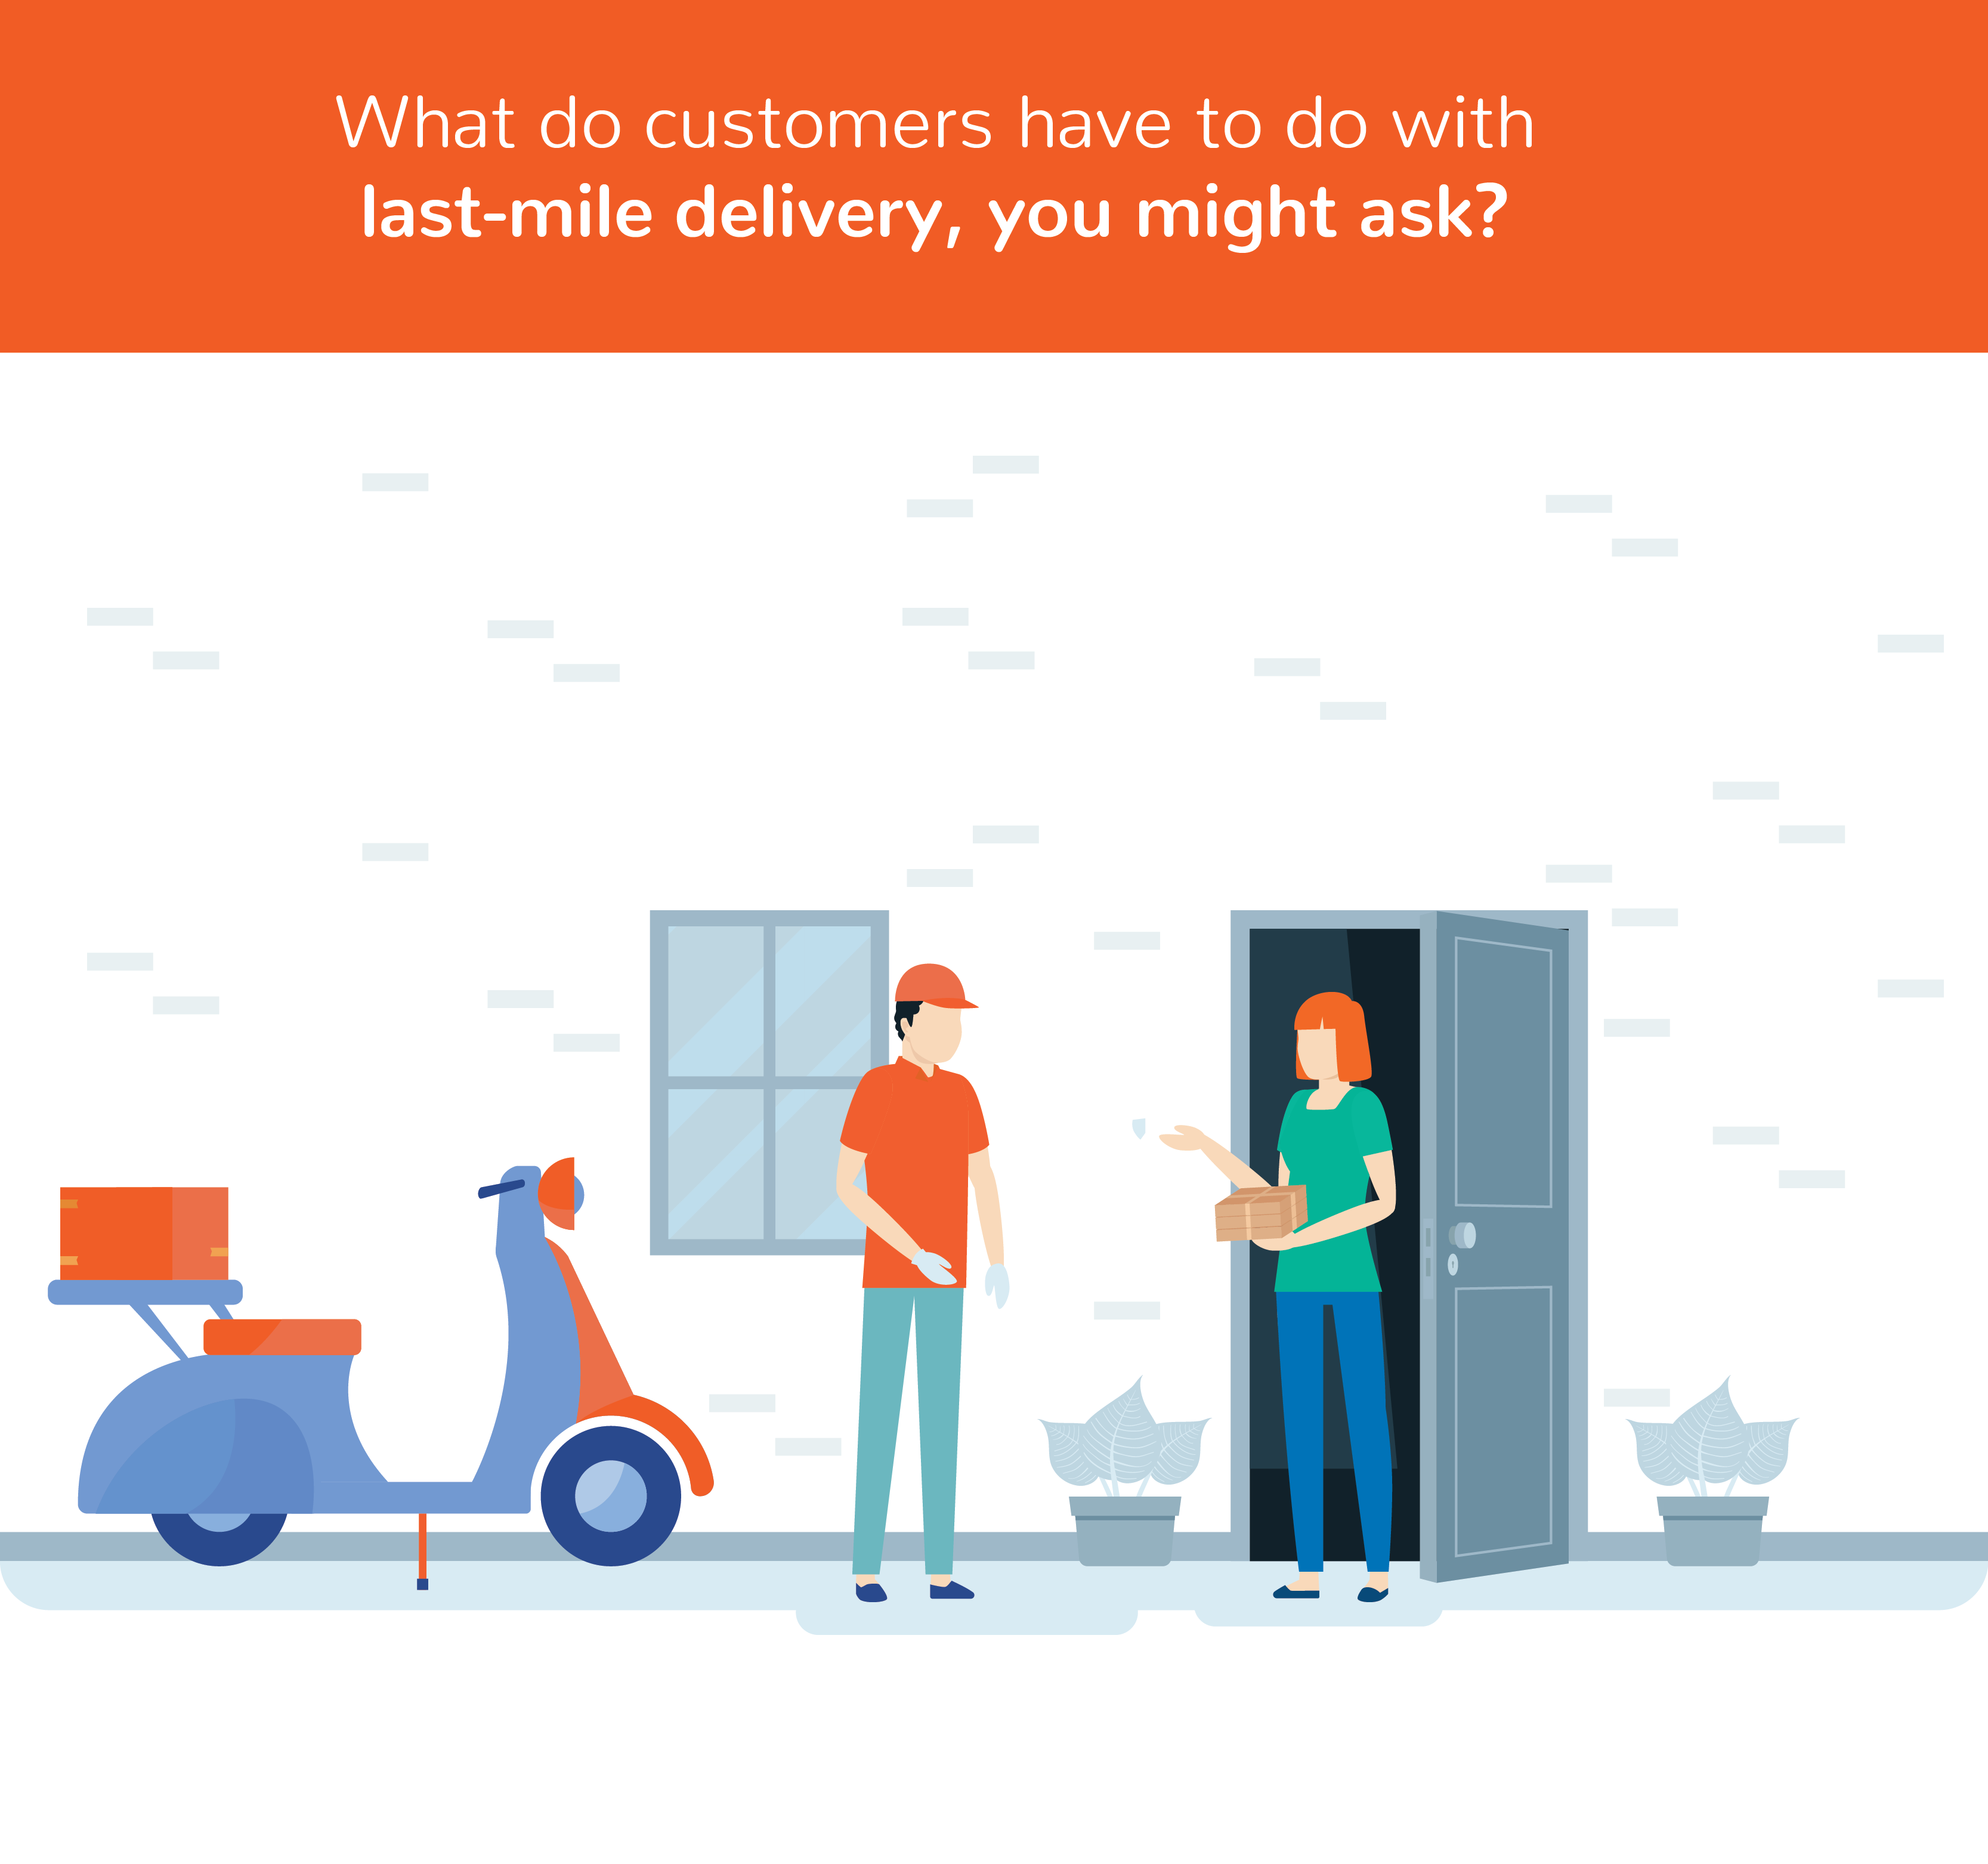 What do customers have to do with last-mile delivery?